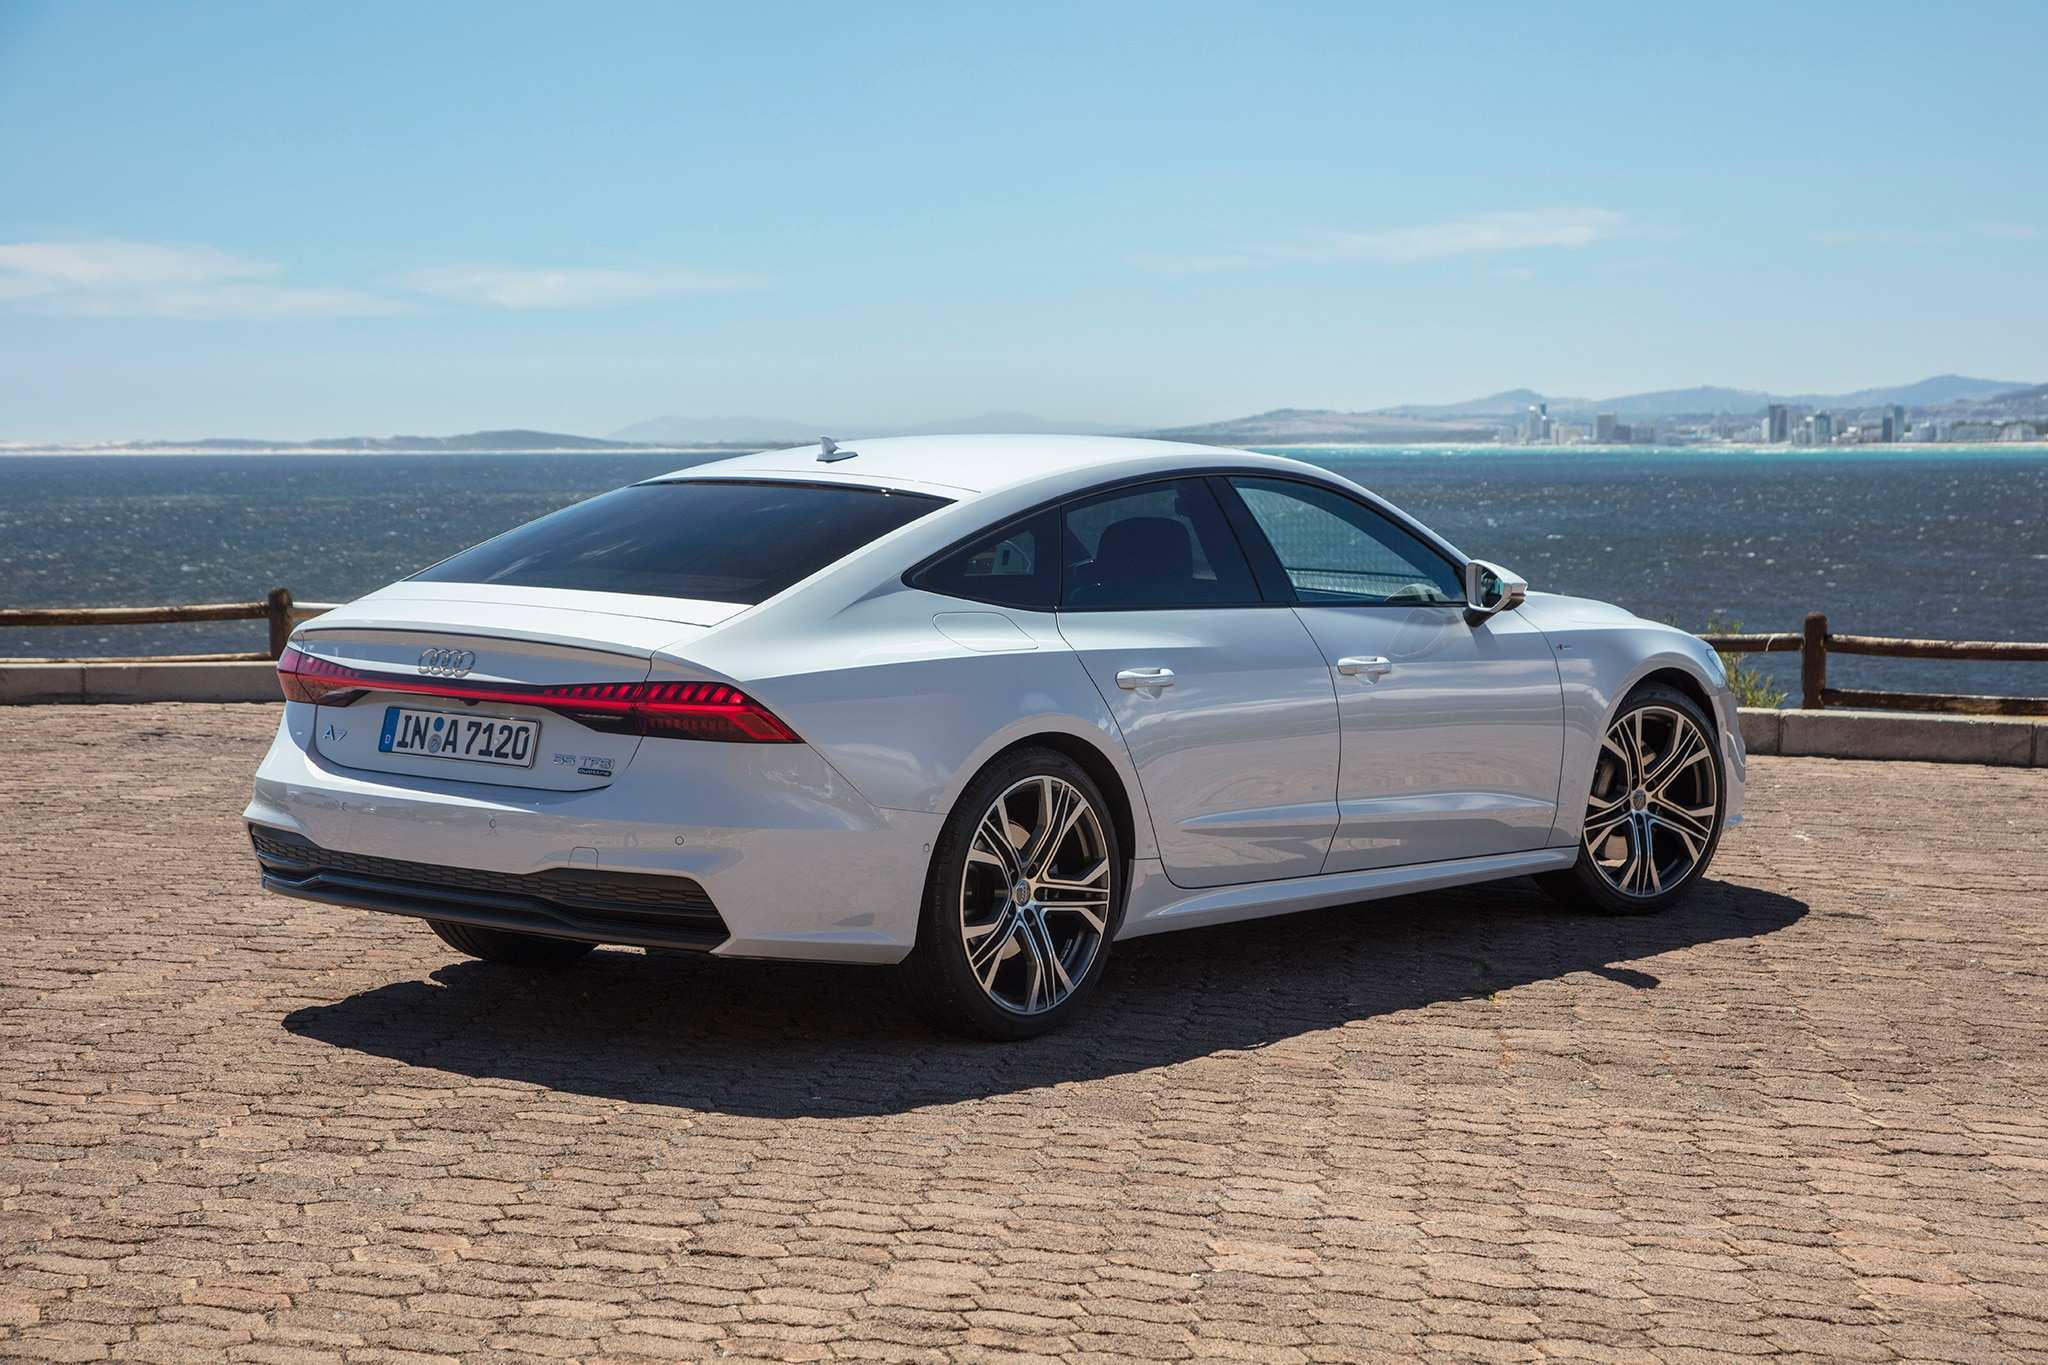 94 Gallery of 2019 Audi A7 Debut Spy Shoot by 2019 Audi A7 Debut